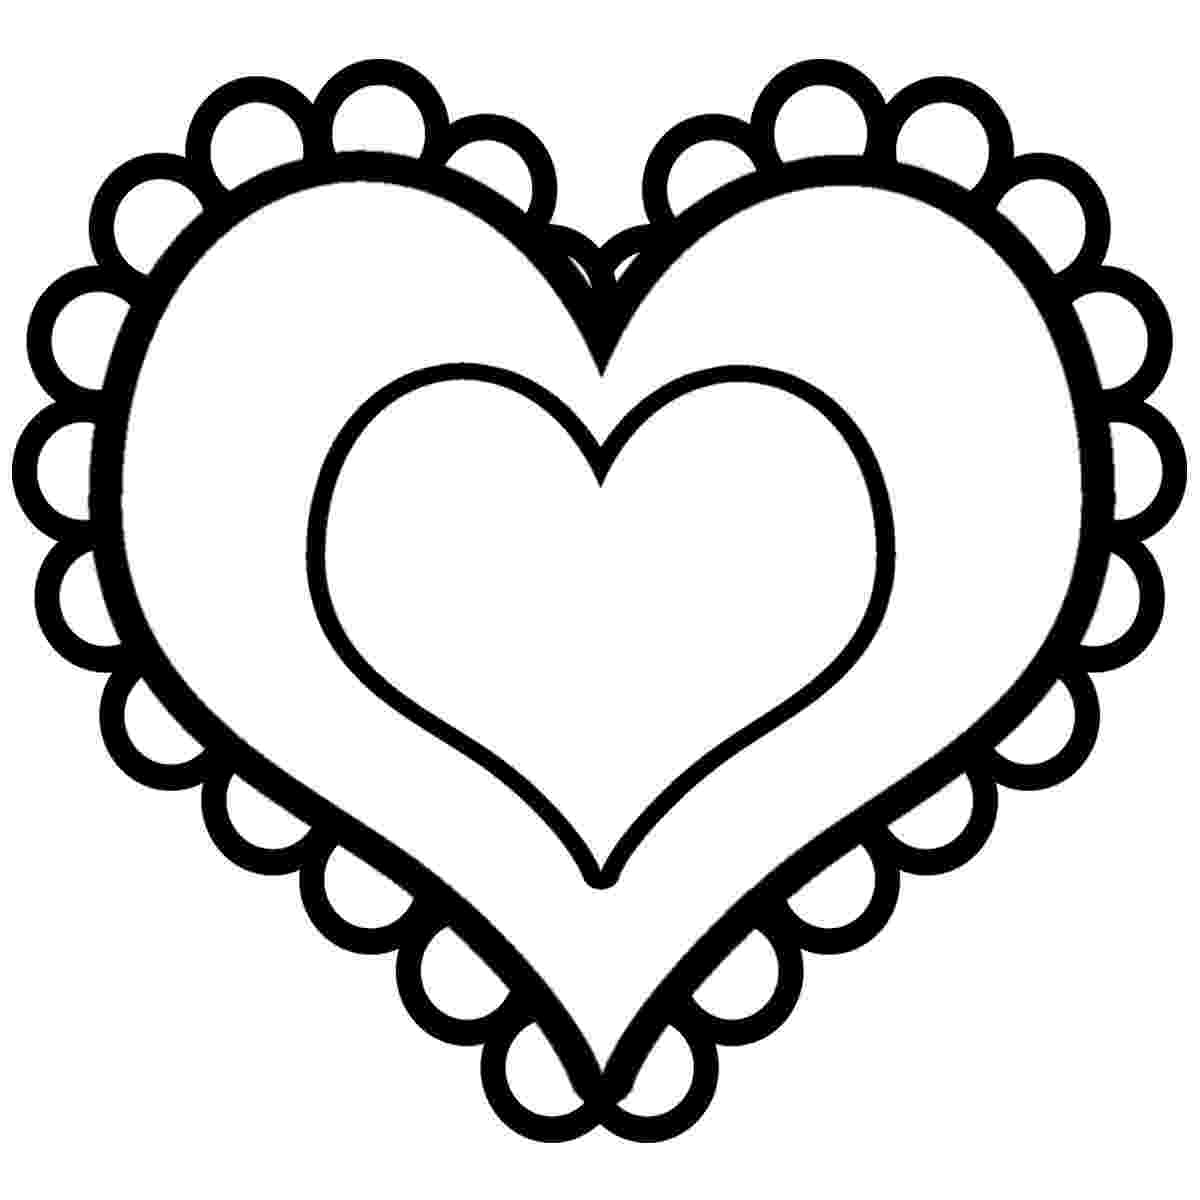 free coloring pages hearts free printable heart coloring pages for kids cool2bkids hearts free coloring pages